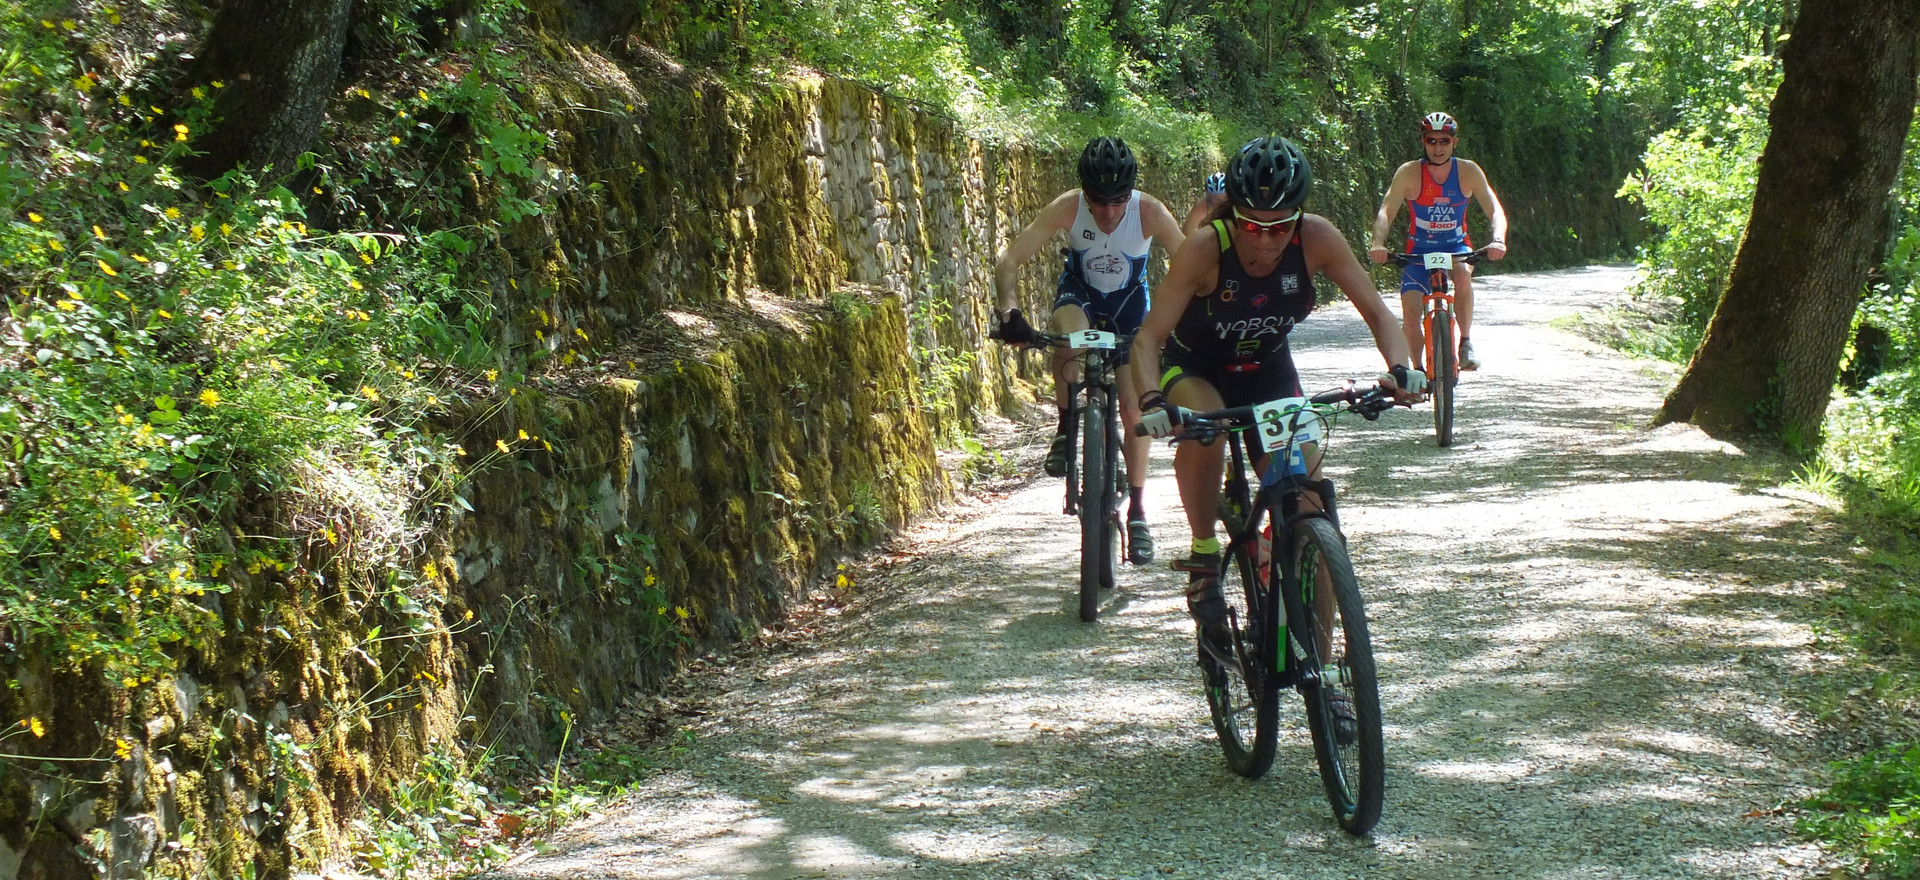 Sistemi di cronometraggio per Mountain Bike MTB